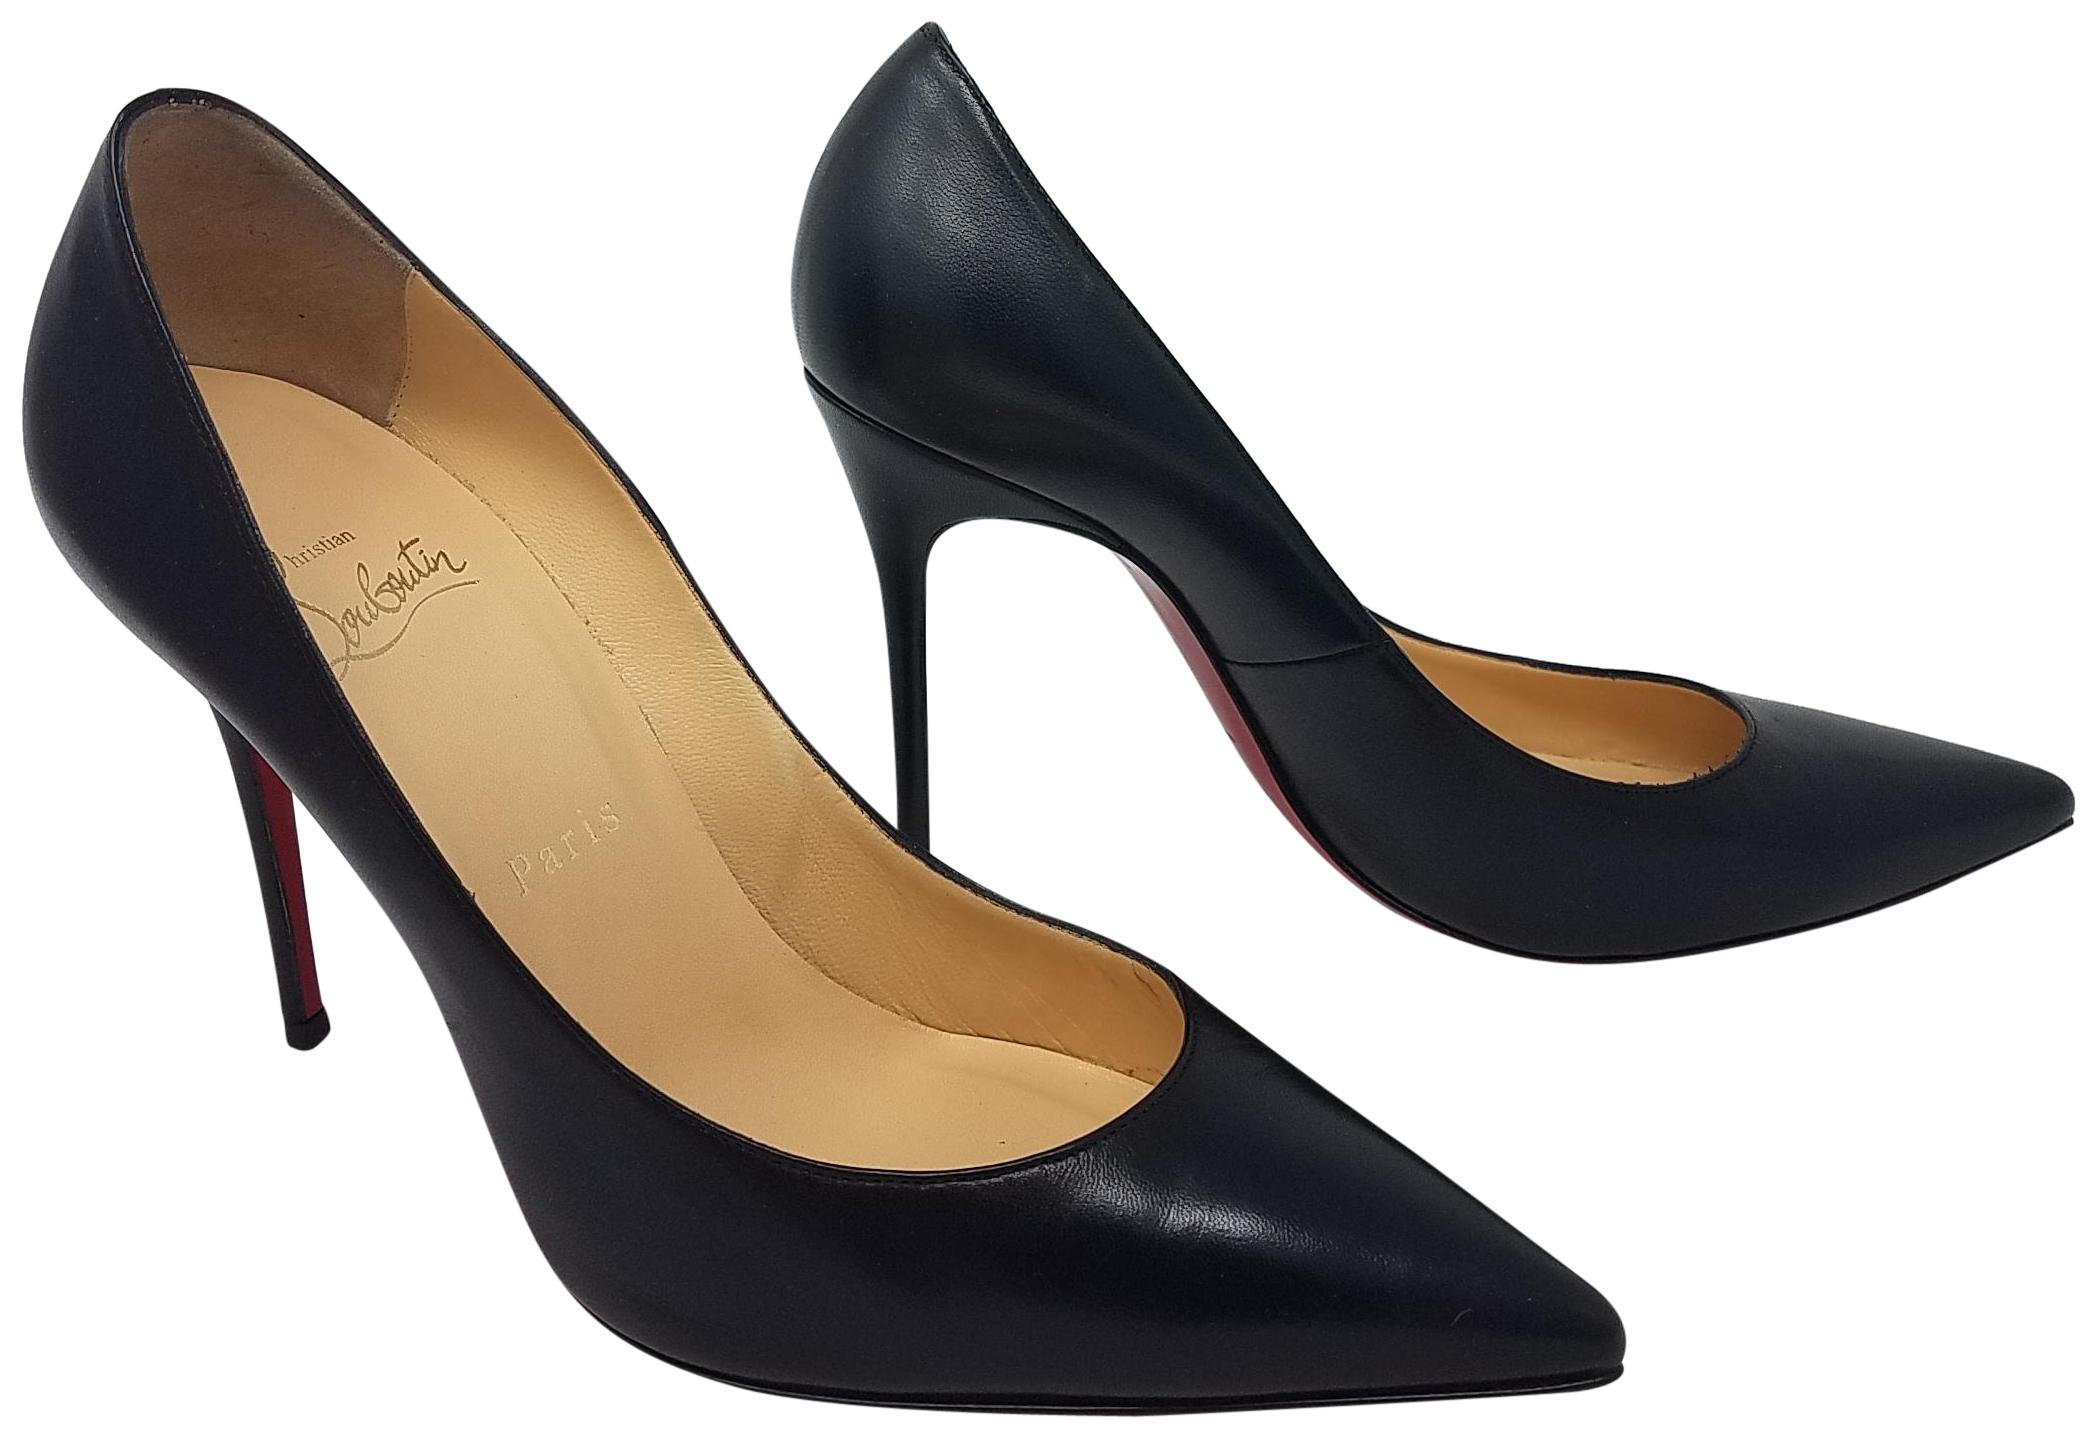 Christian Louboutin Black Leather Decollete 554 100 Stiletto Pumps Size EU 38.5 (Approx. US 8.5) Regular (M, B)